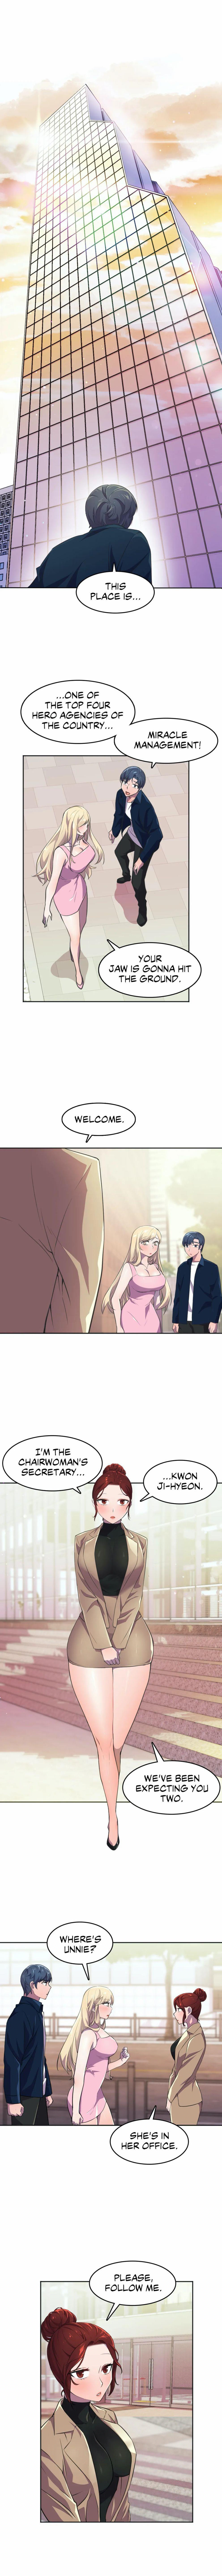 HERO MANAGER Ch. 1-15 82